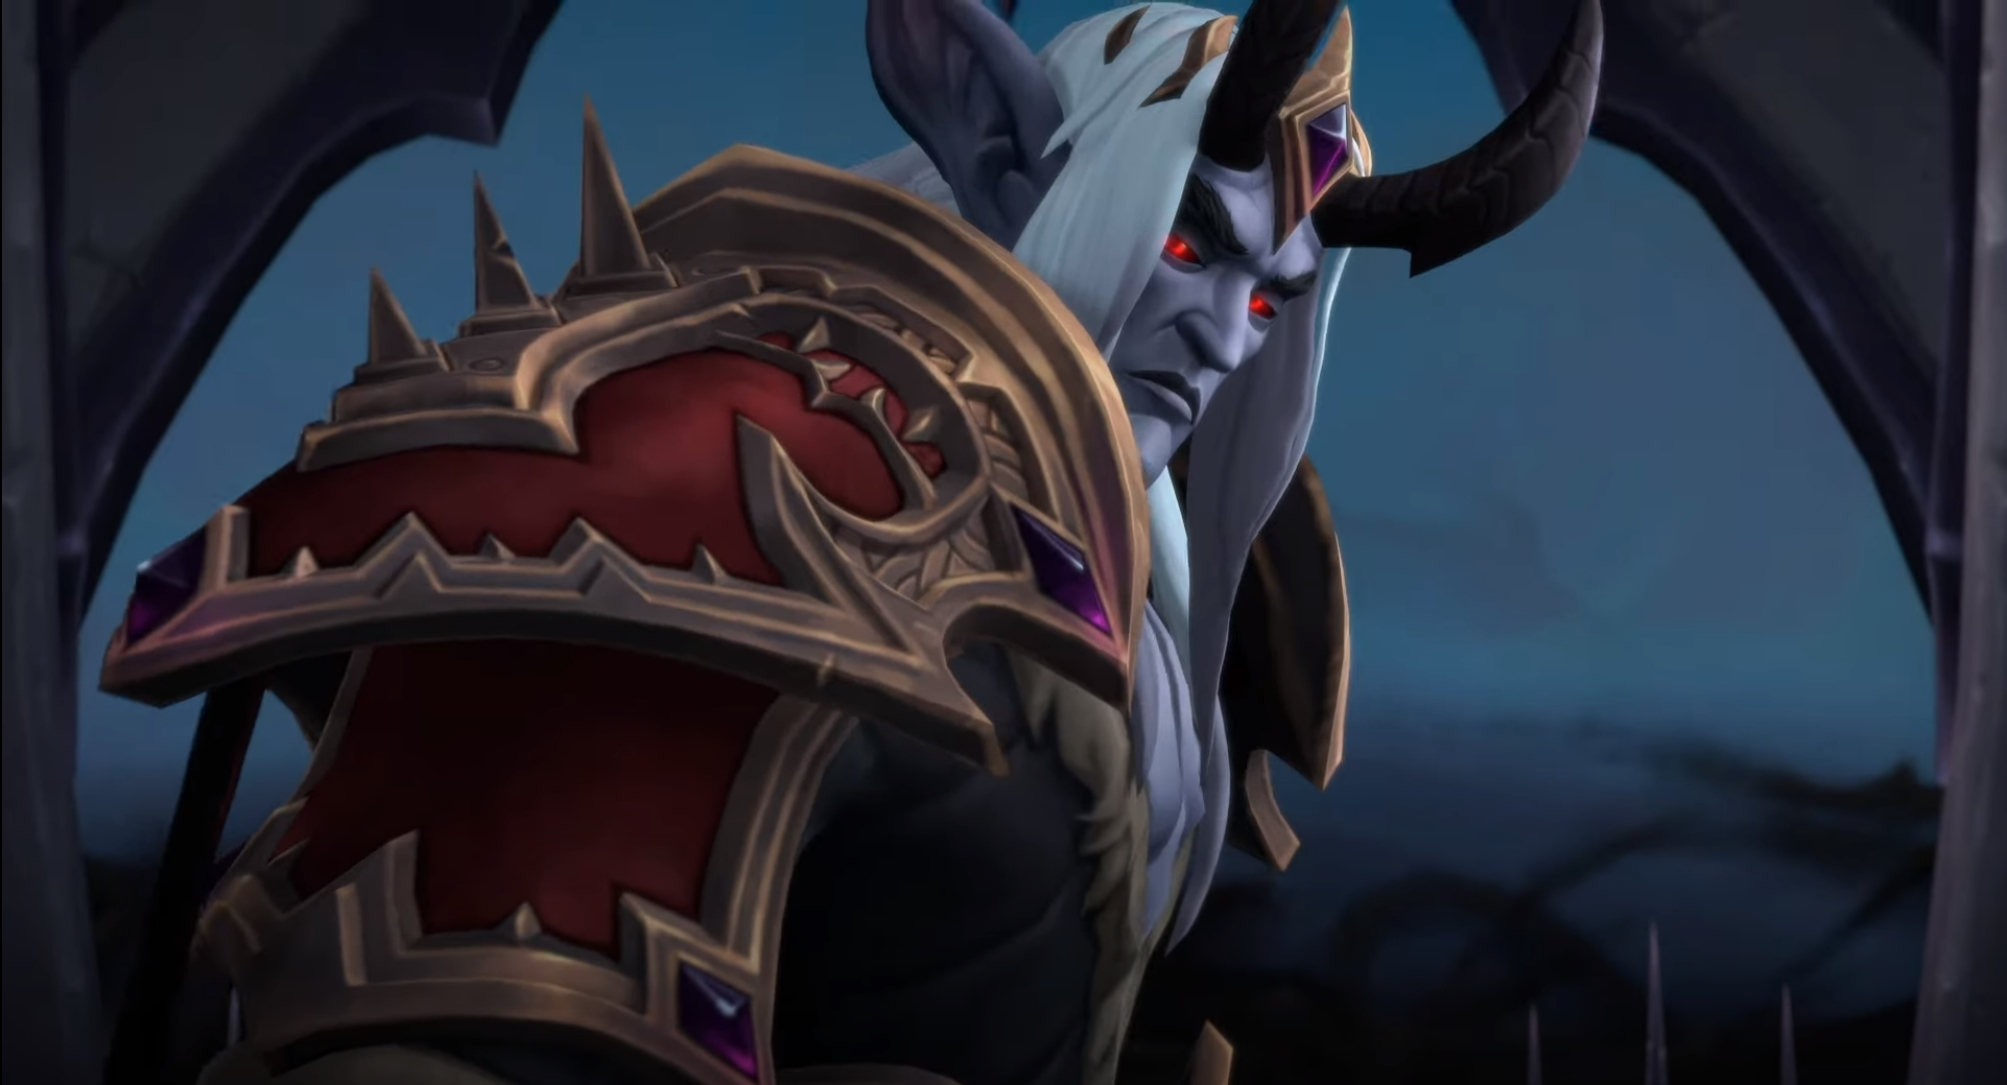 World Of Warcraft: Shadowlands Players Find Castle Nathria Bosses Significantly More Difficult Than Expected